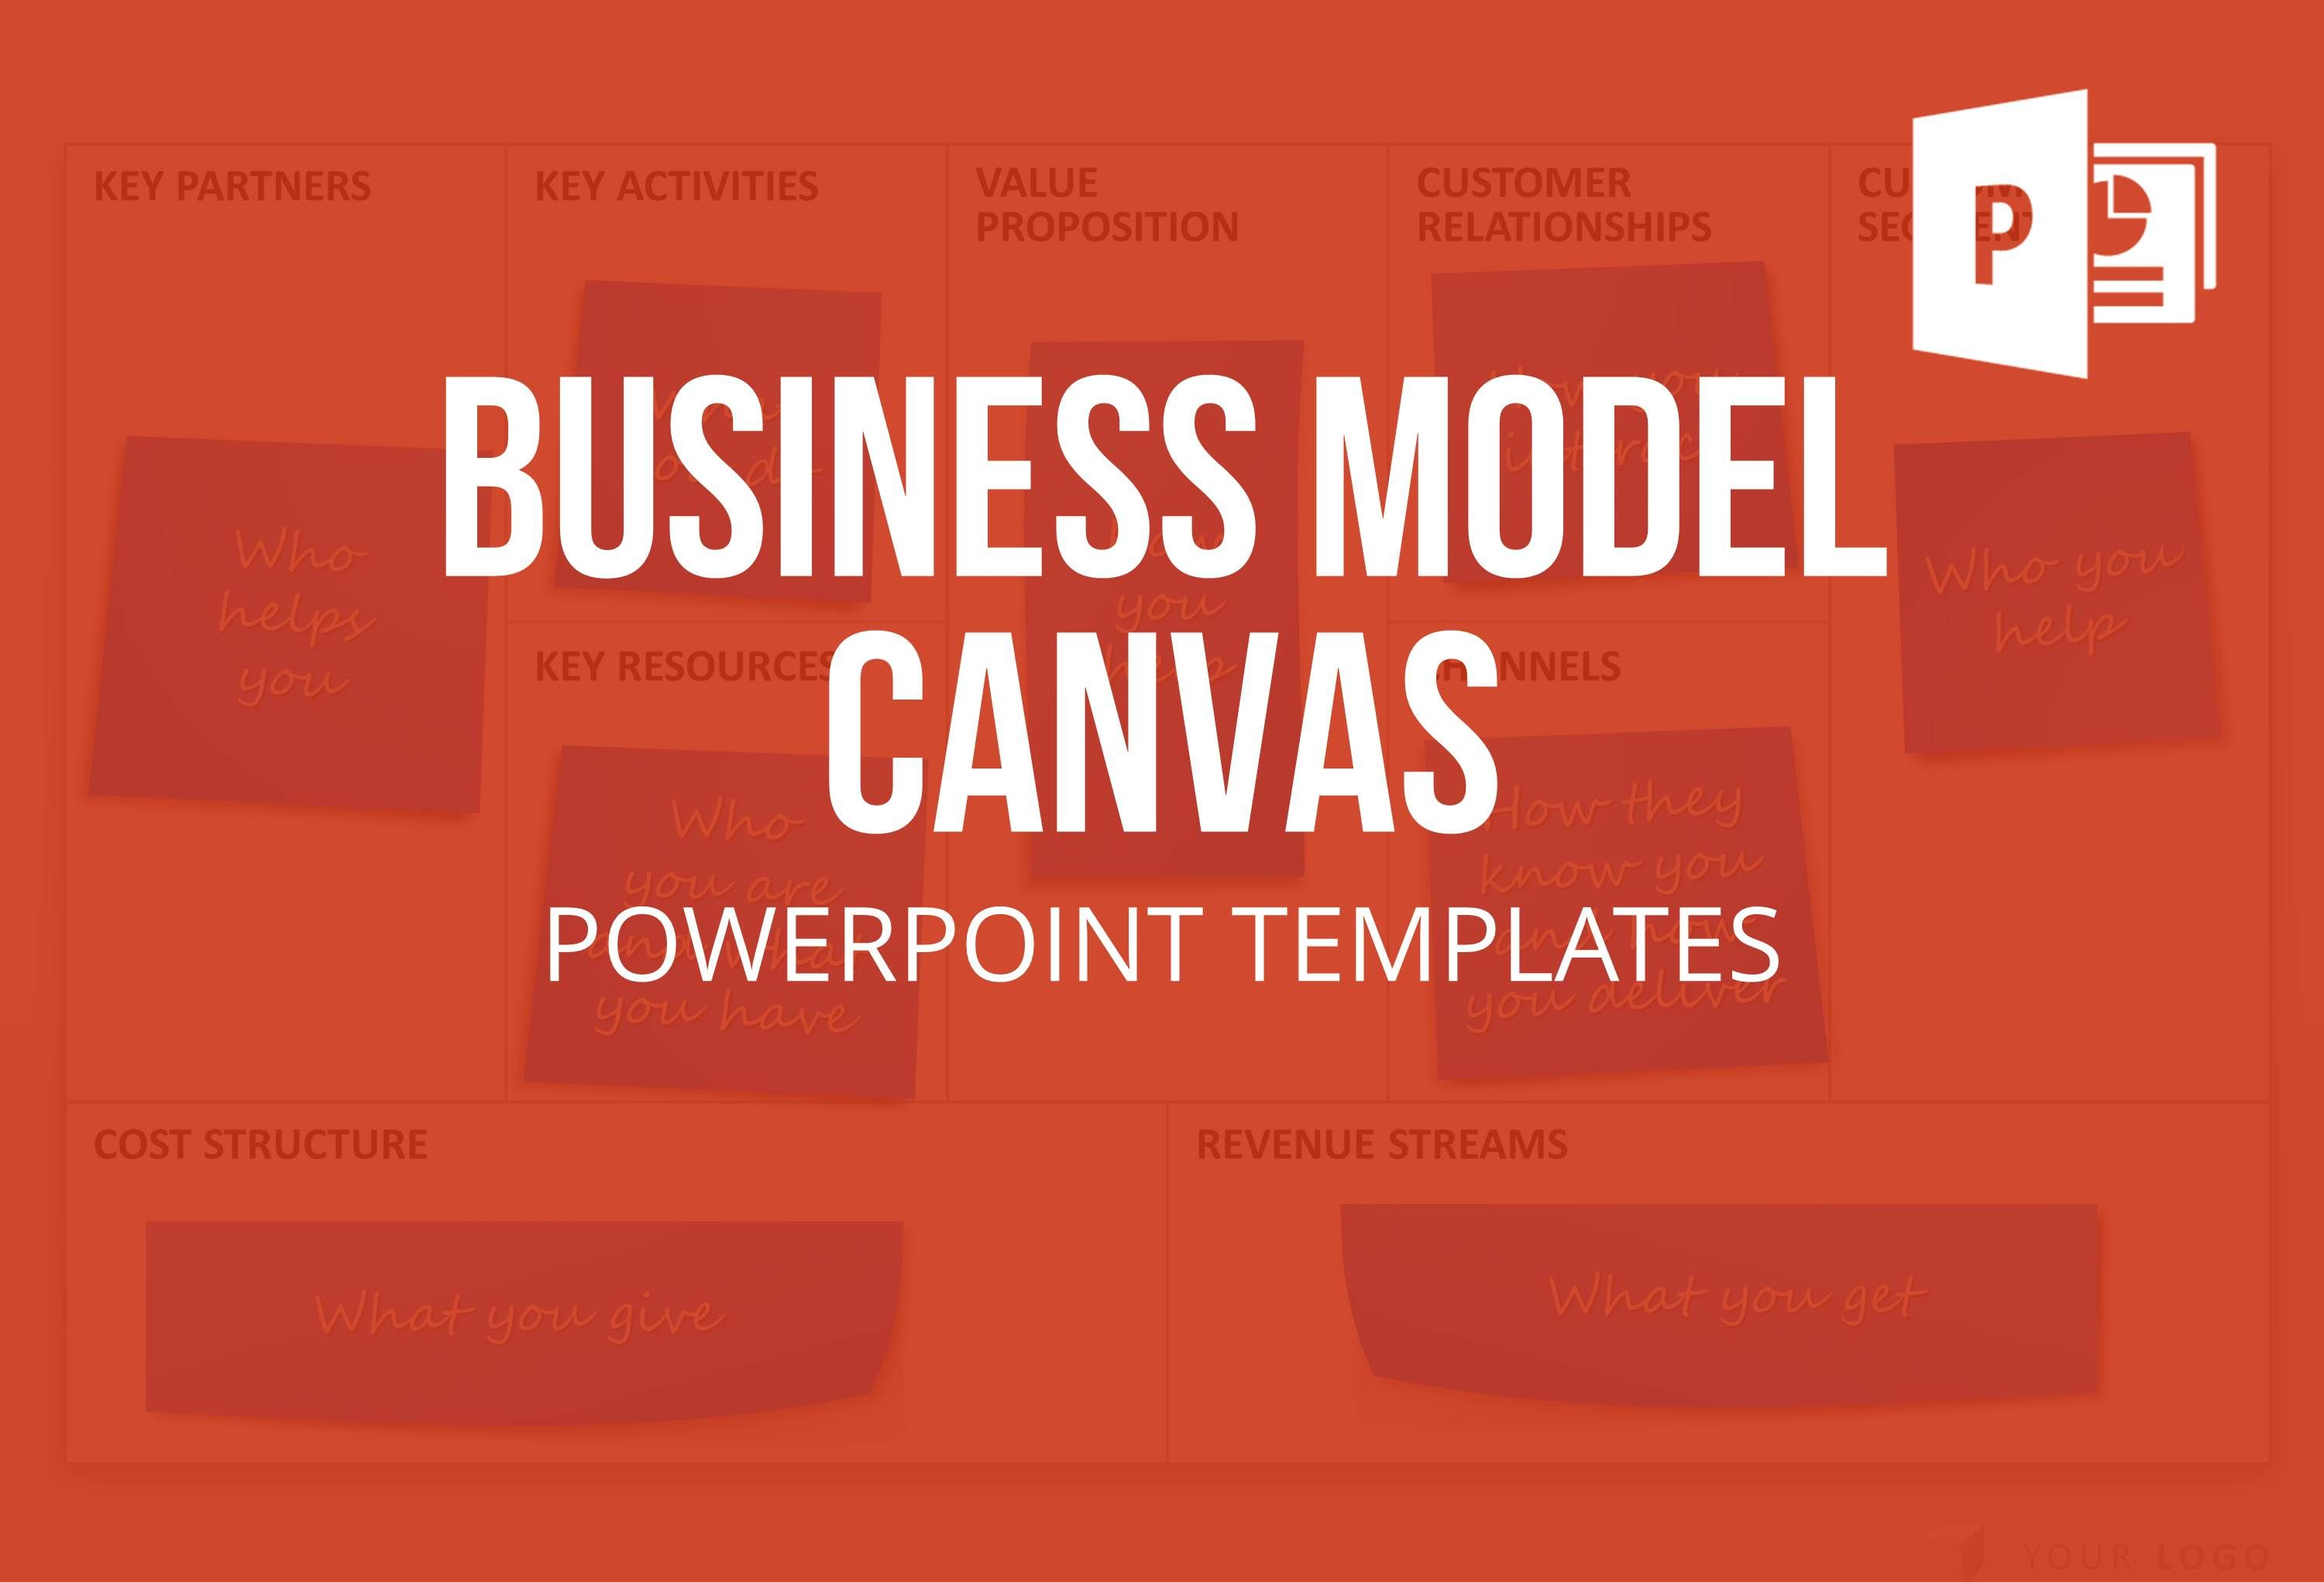 Business model canvas templates bmc for powerpoint for the business model canvas templates bmc for powerpoint for the planning and visualization of the strategic development of new and existing business models accmission